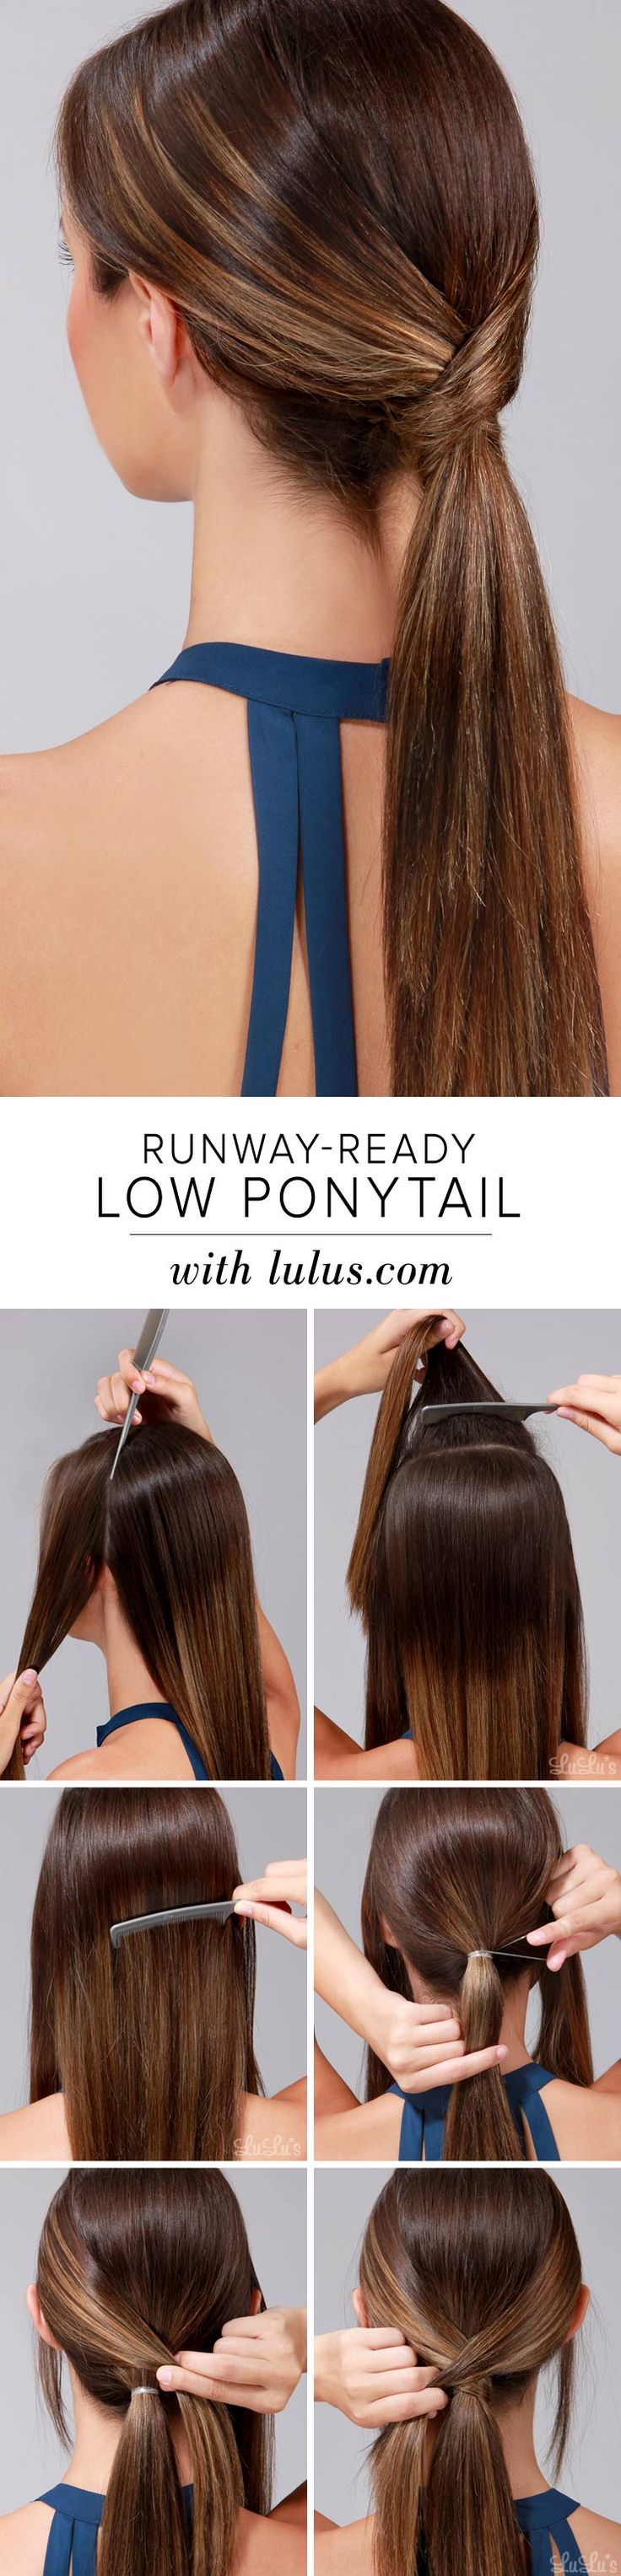 Best 25 Cute Easy Ponytails Ideas On Pinterest Cute Ponytails